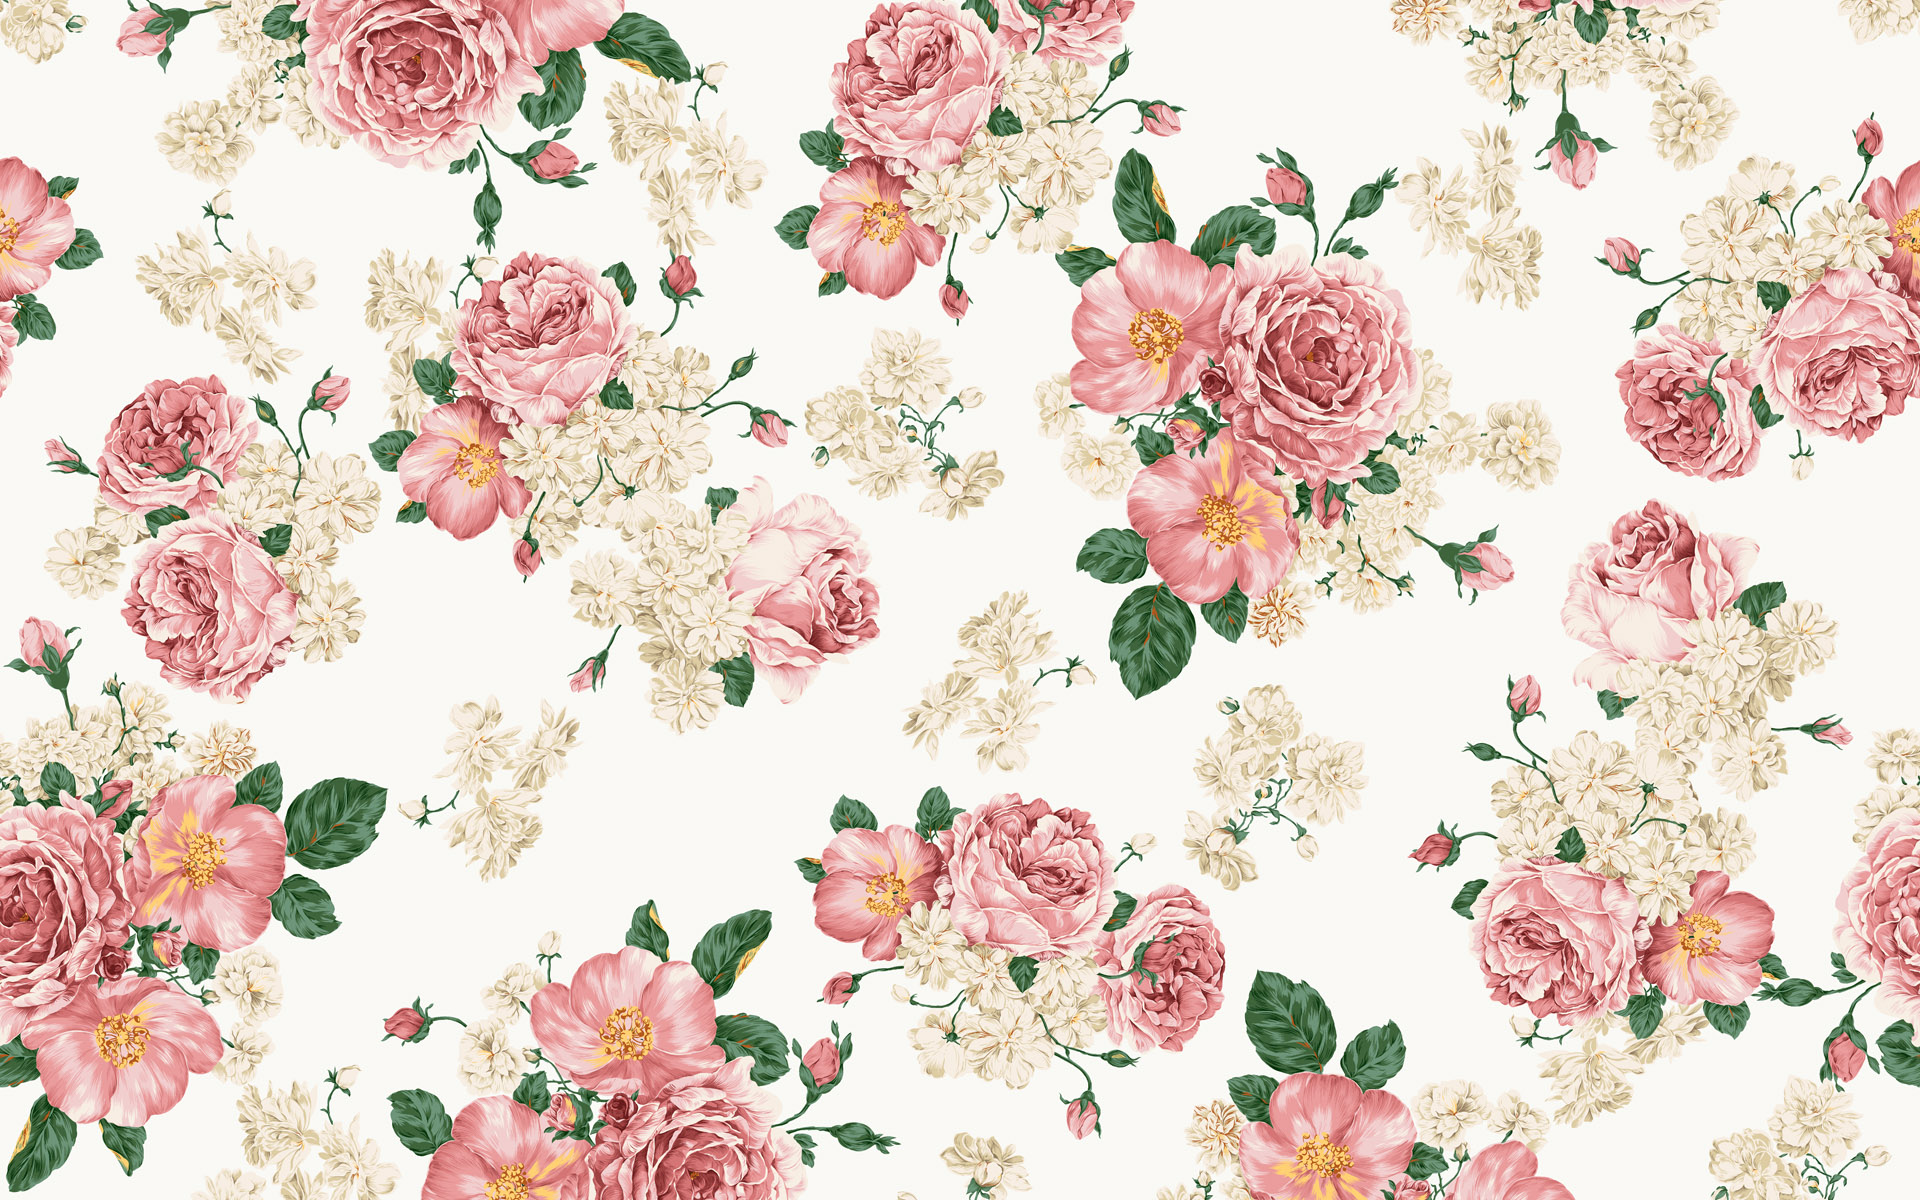 Backgrounds for Gt Vintage Floral Desktop Wallpaper